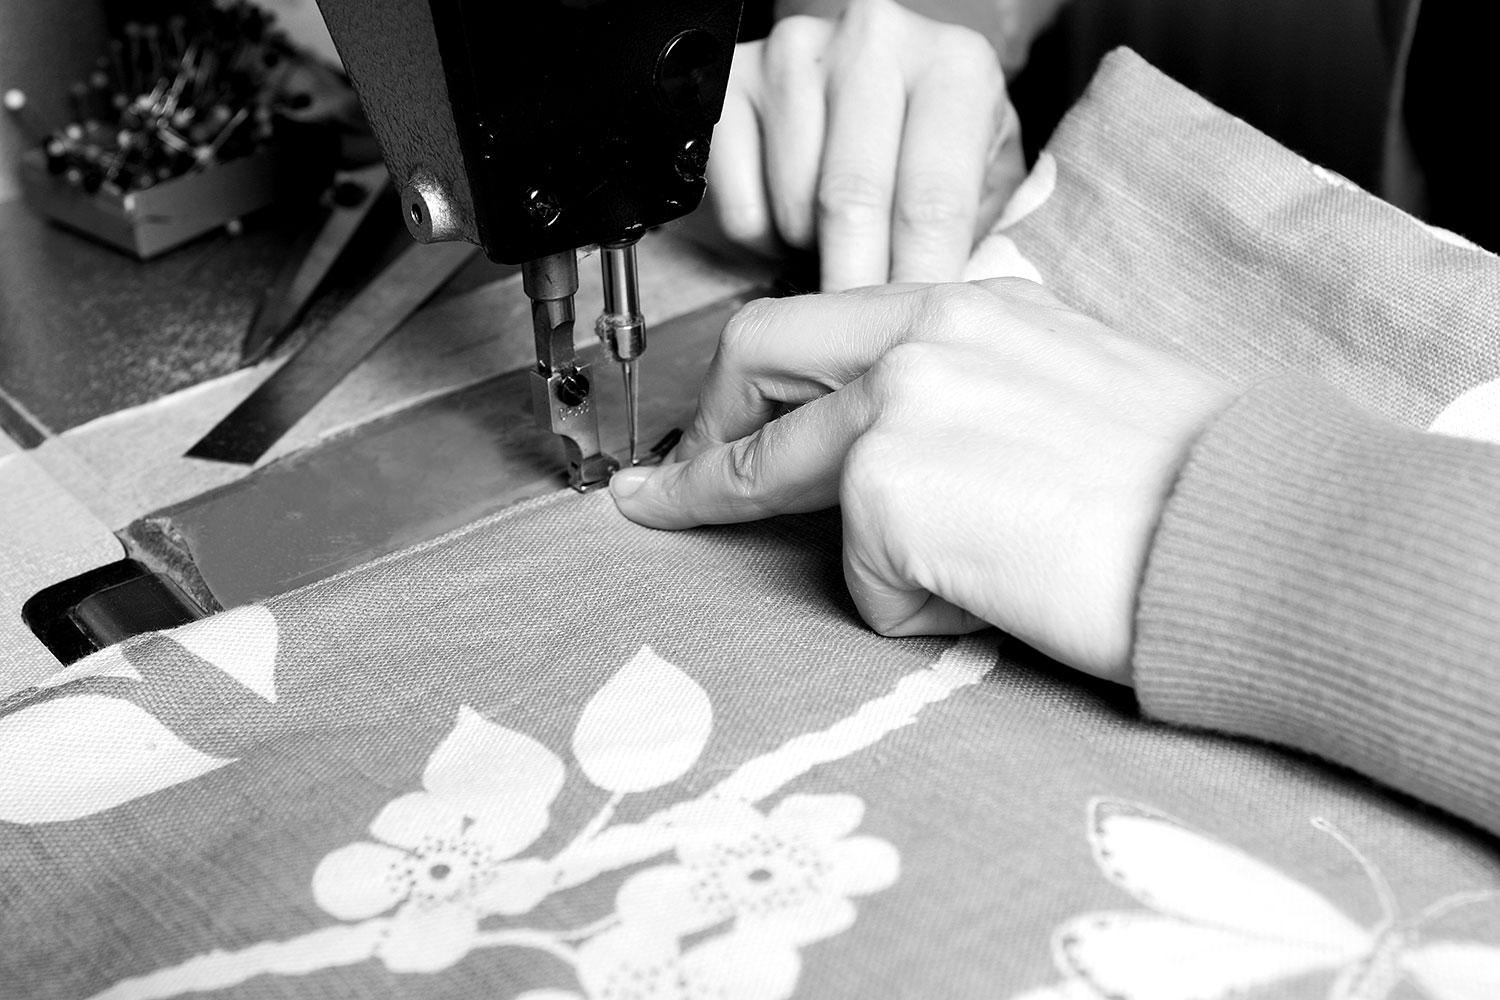 sewing_machine_close_bw